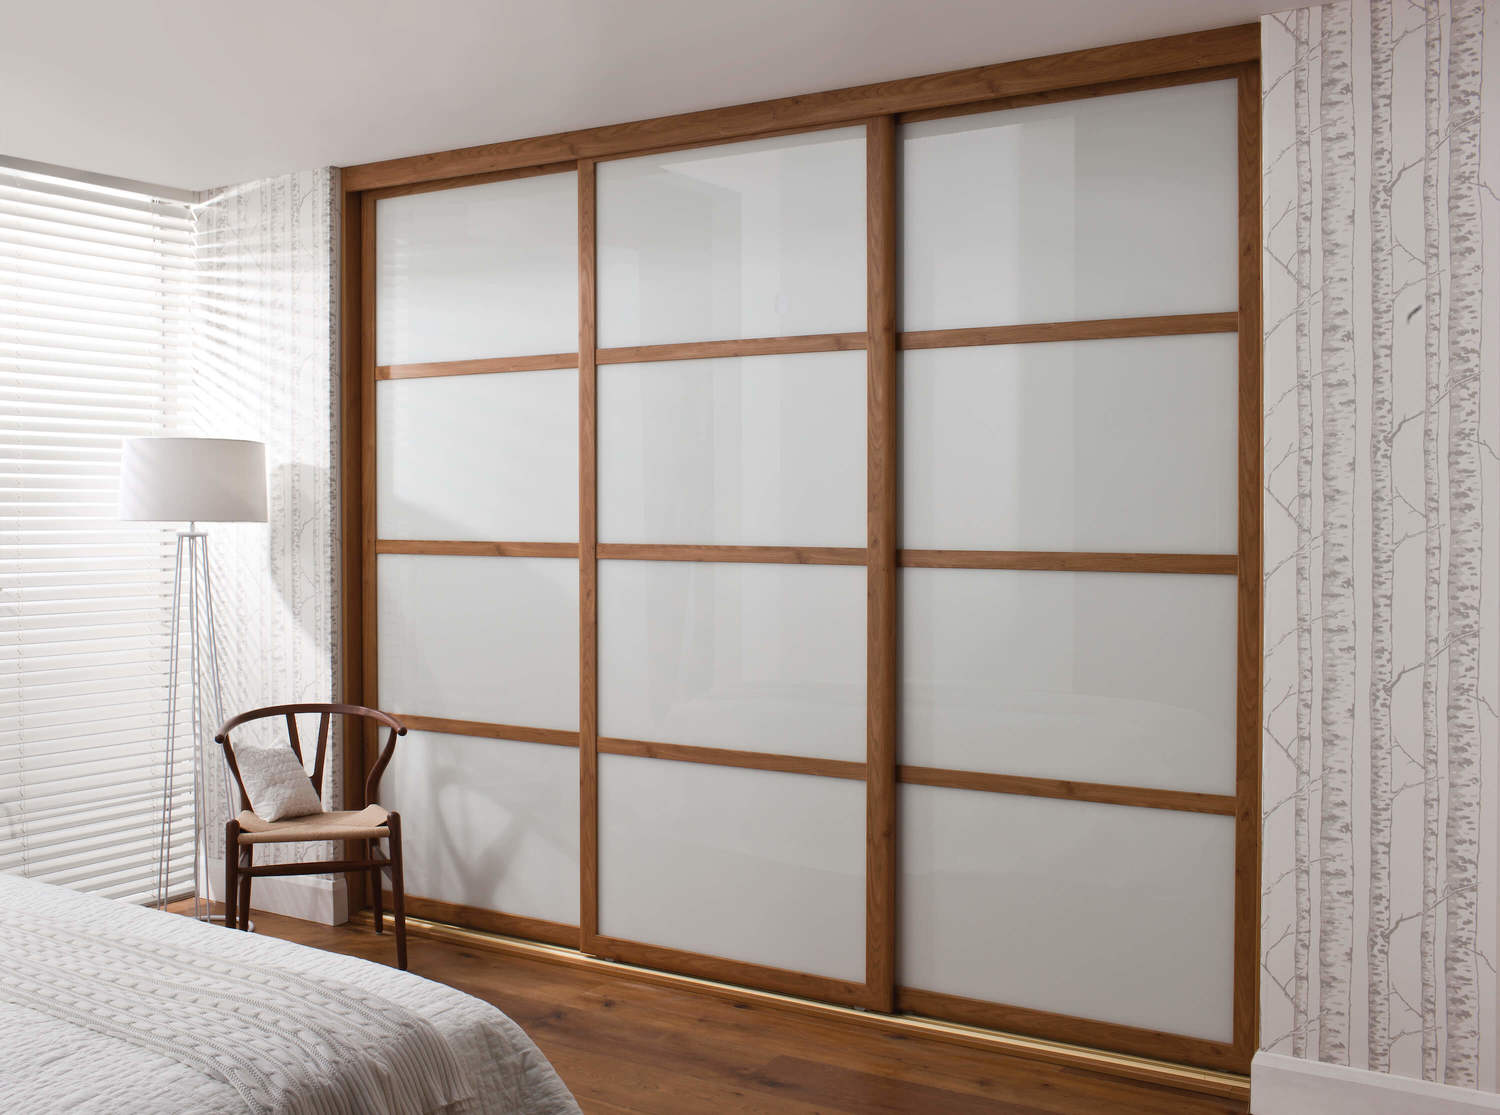 Made to measure sliding wardrobes glass sliding doors mirror - Affordable Fitted Sliding Wardrobes Find Out More